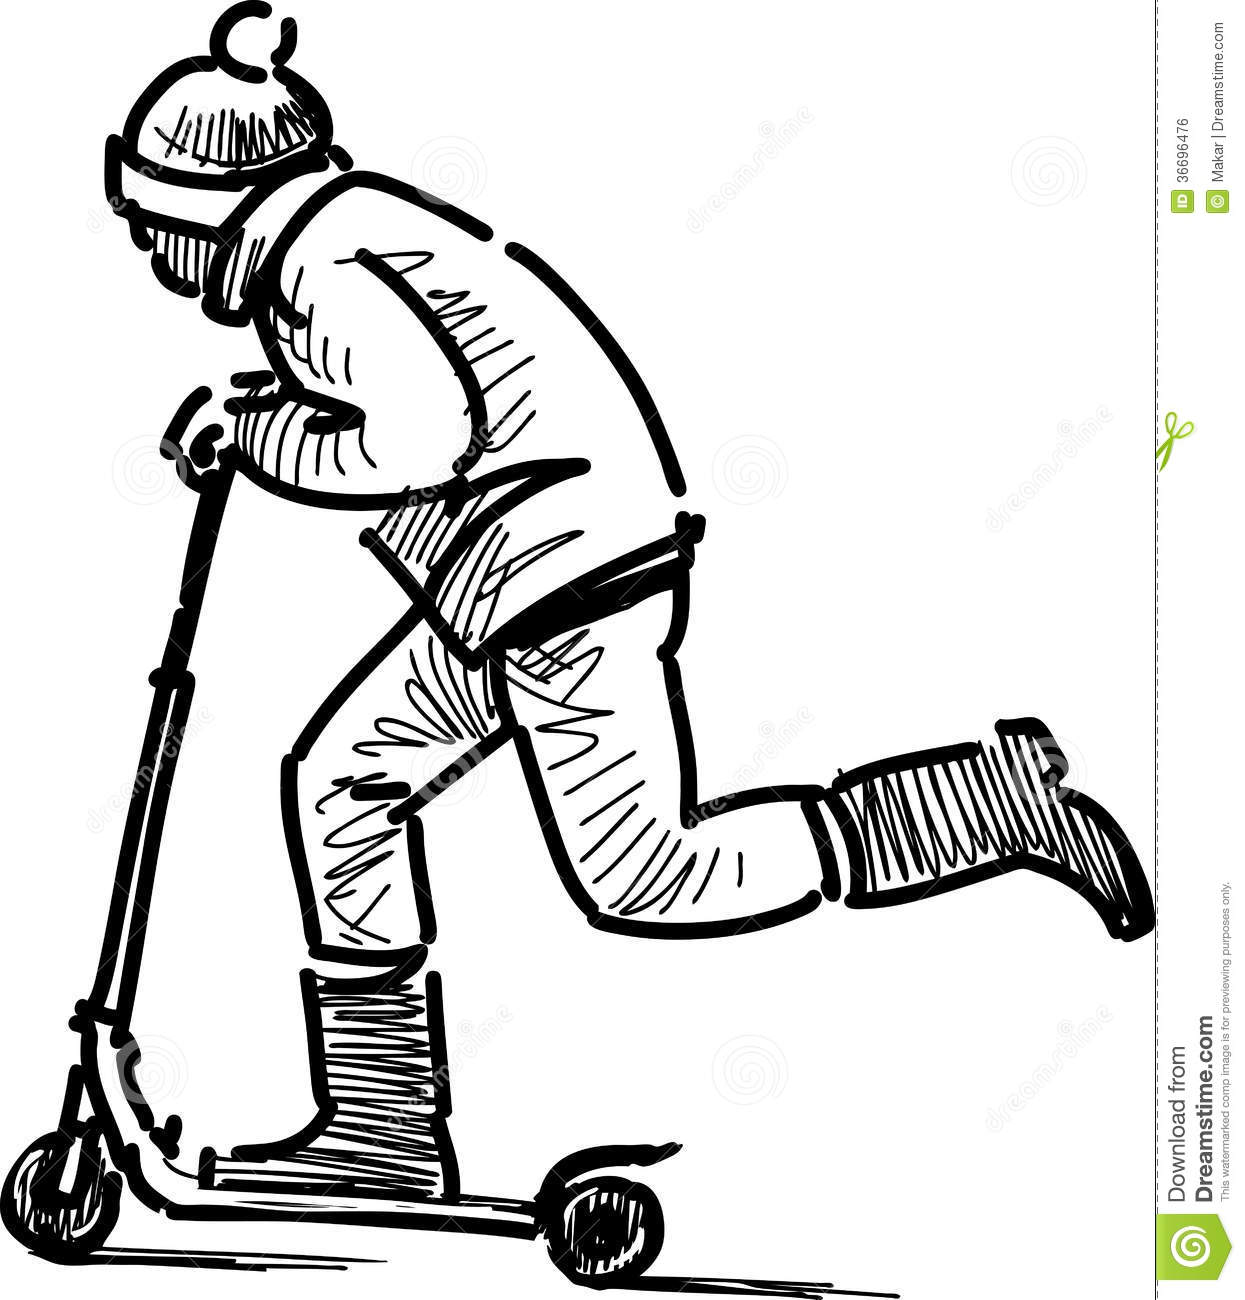 Boy on scooter stock photo. Image of people, riding